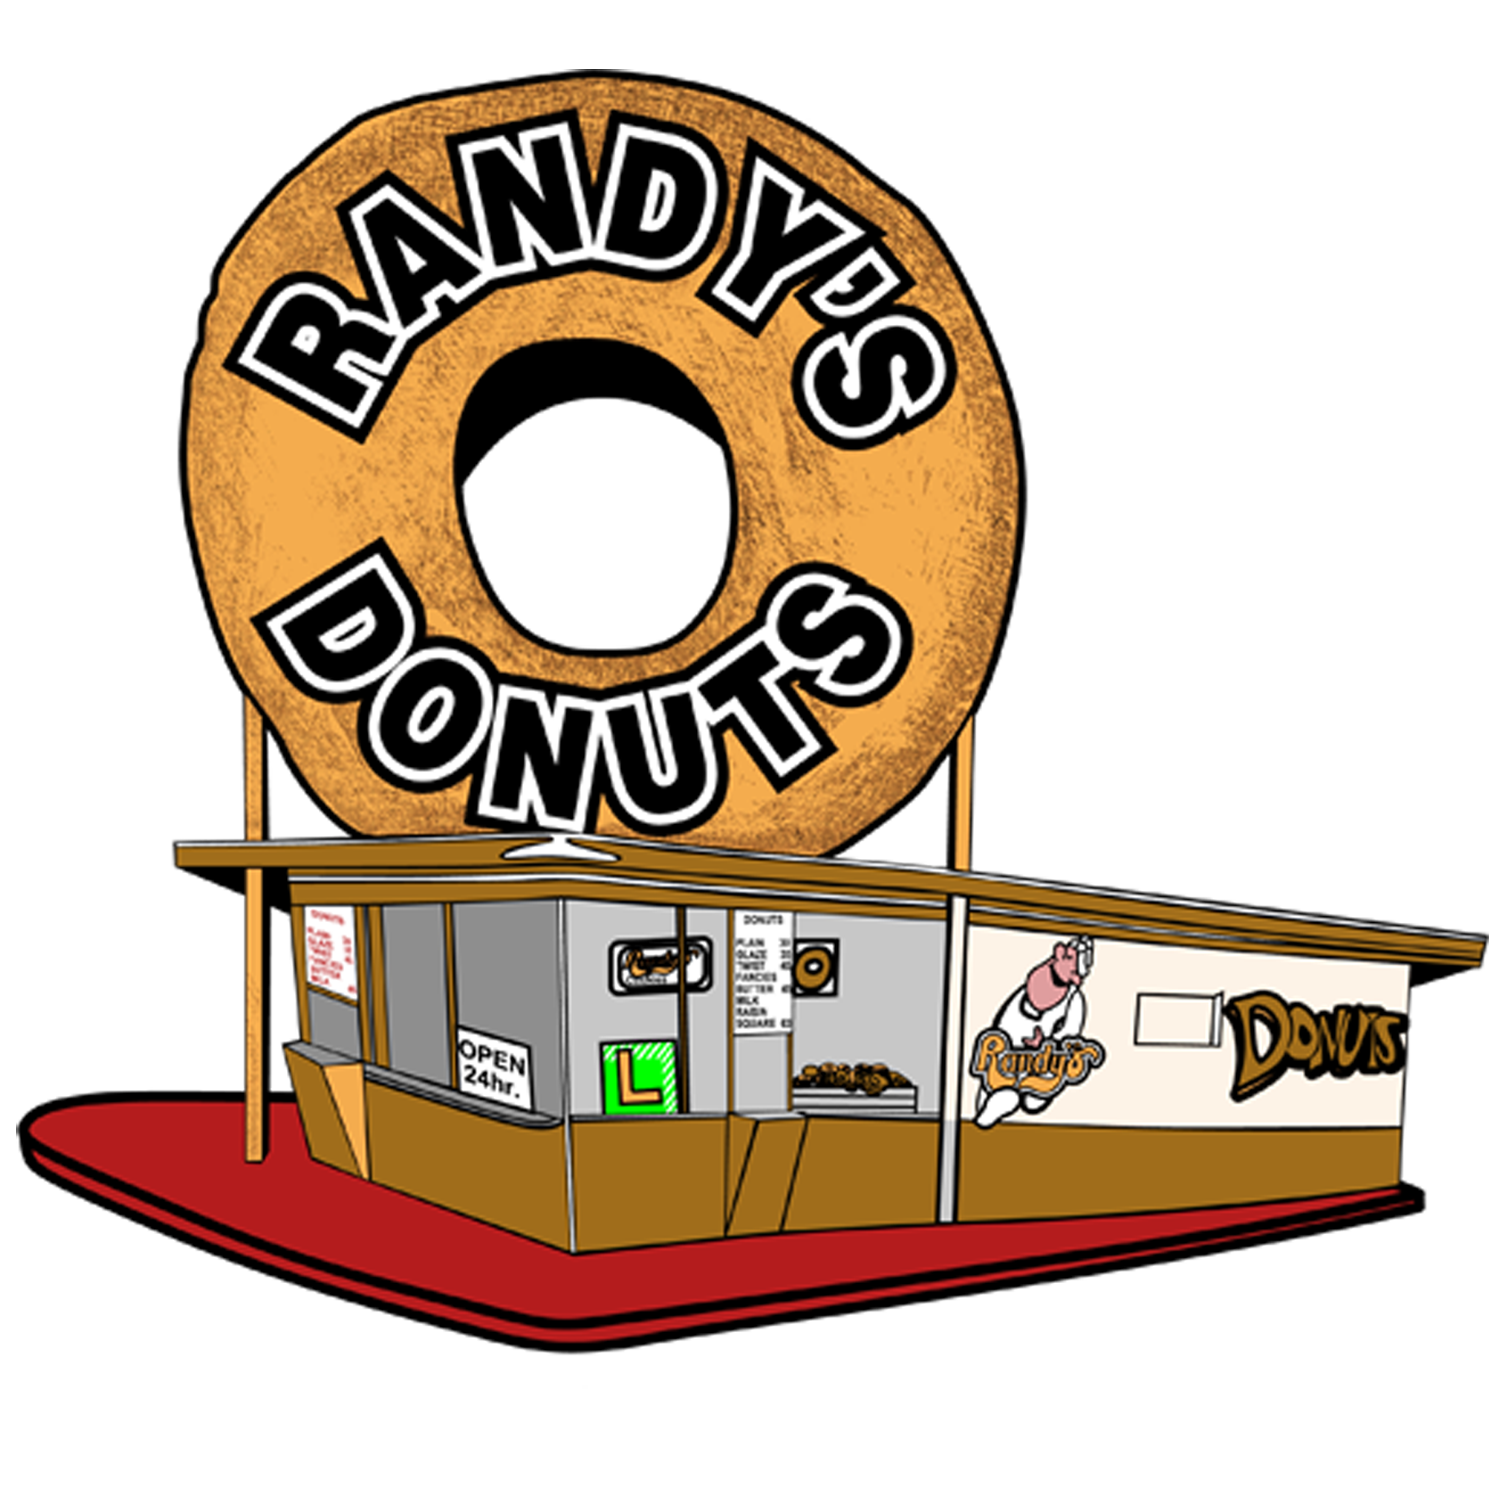 Donut clipart yellow. Randy s donuts